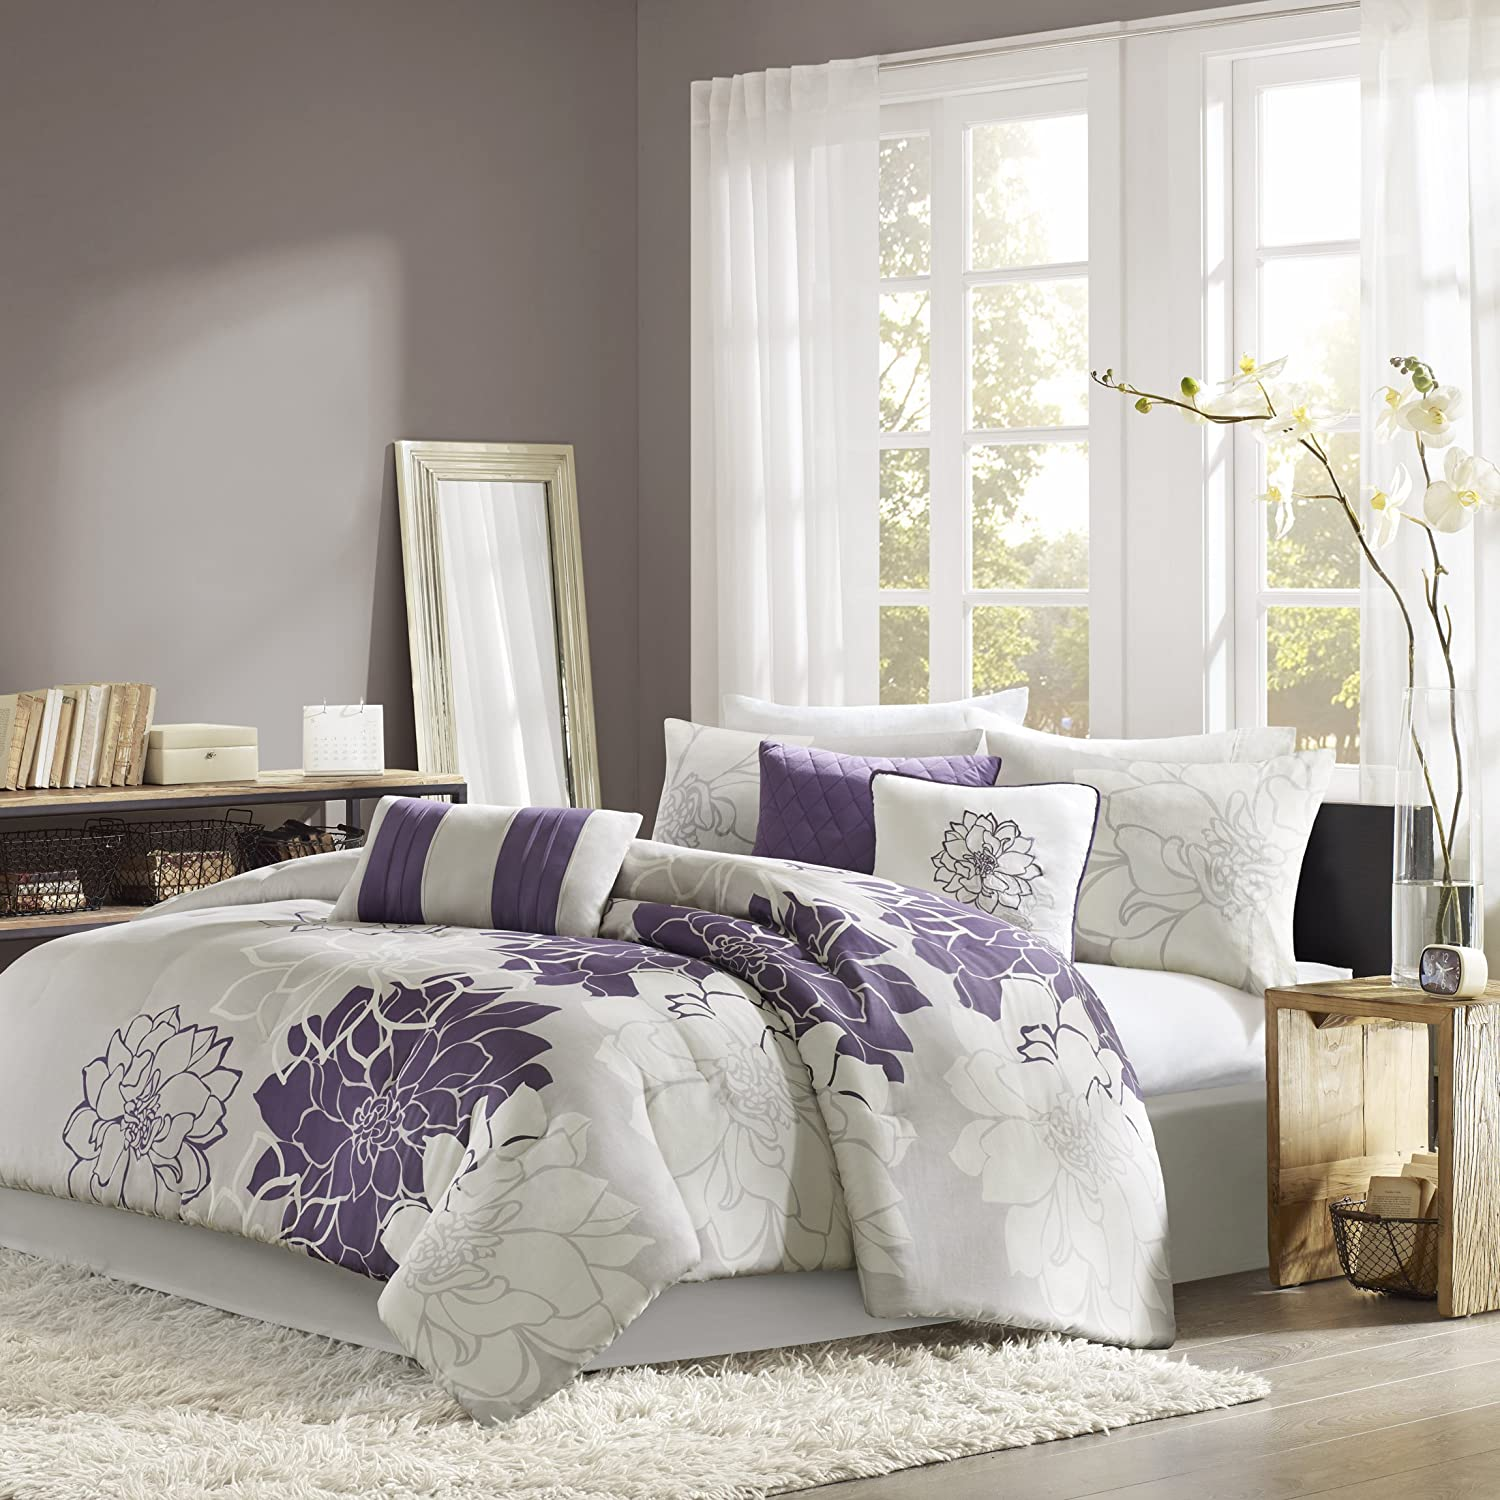 purple bedroom sets. Amazon com  Madison Park Lola 7 Piece Print Comforter Set King Grey Purple Home Kitchen